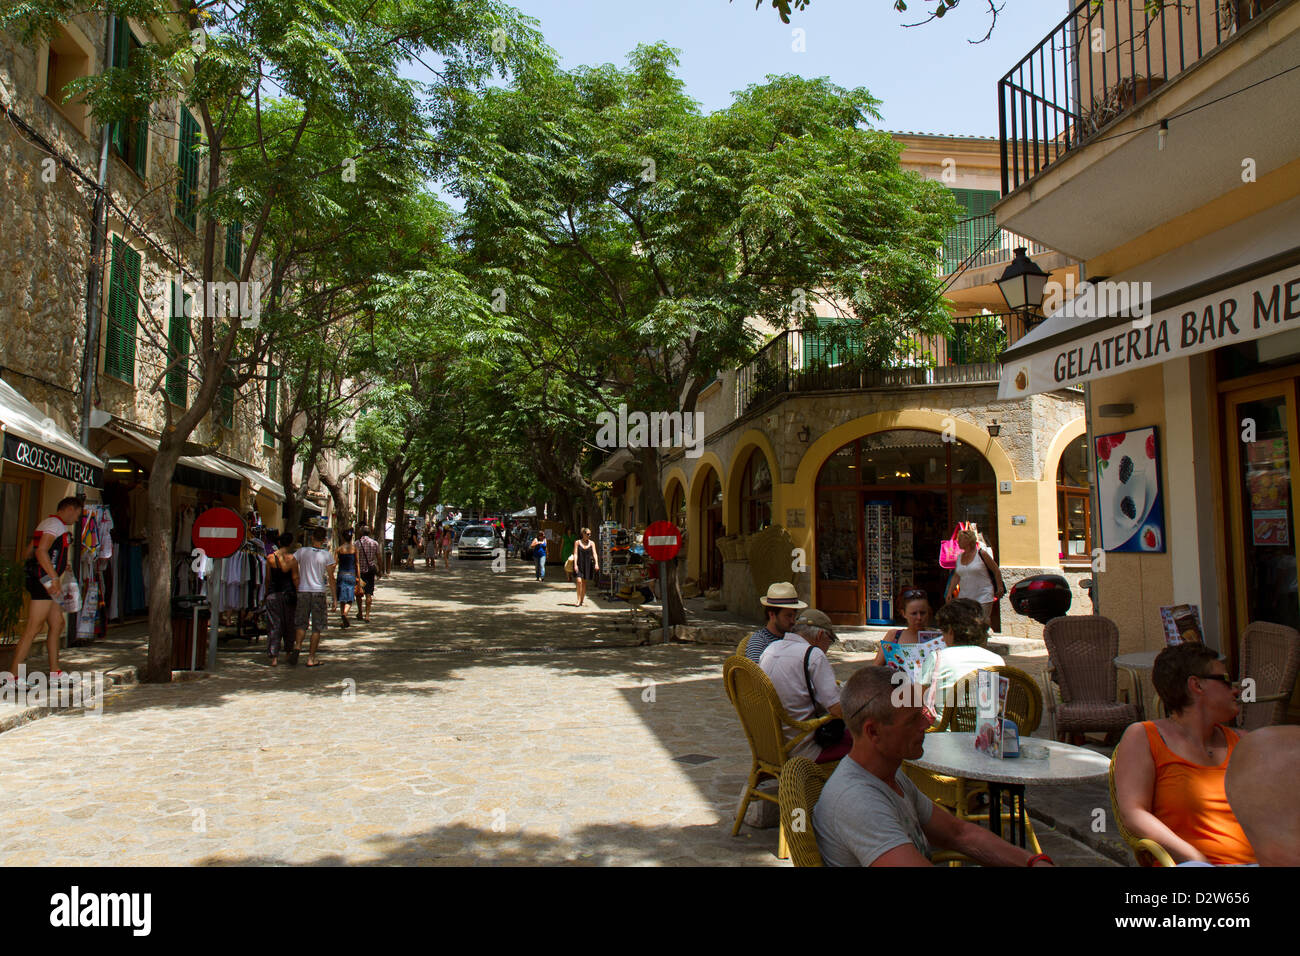 Street with lots of tourists near the Royal Carthusian Monastery (Real Cartuja), Valldemossa, Majorca, Spain. - Stock Image